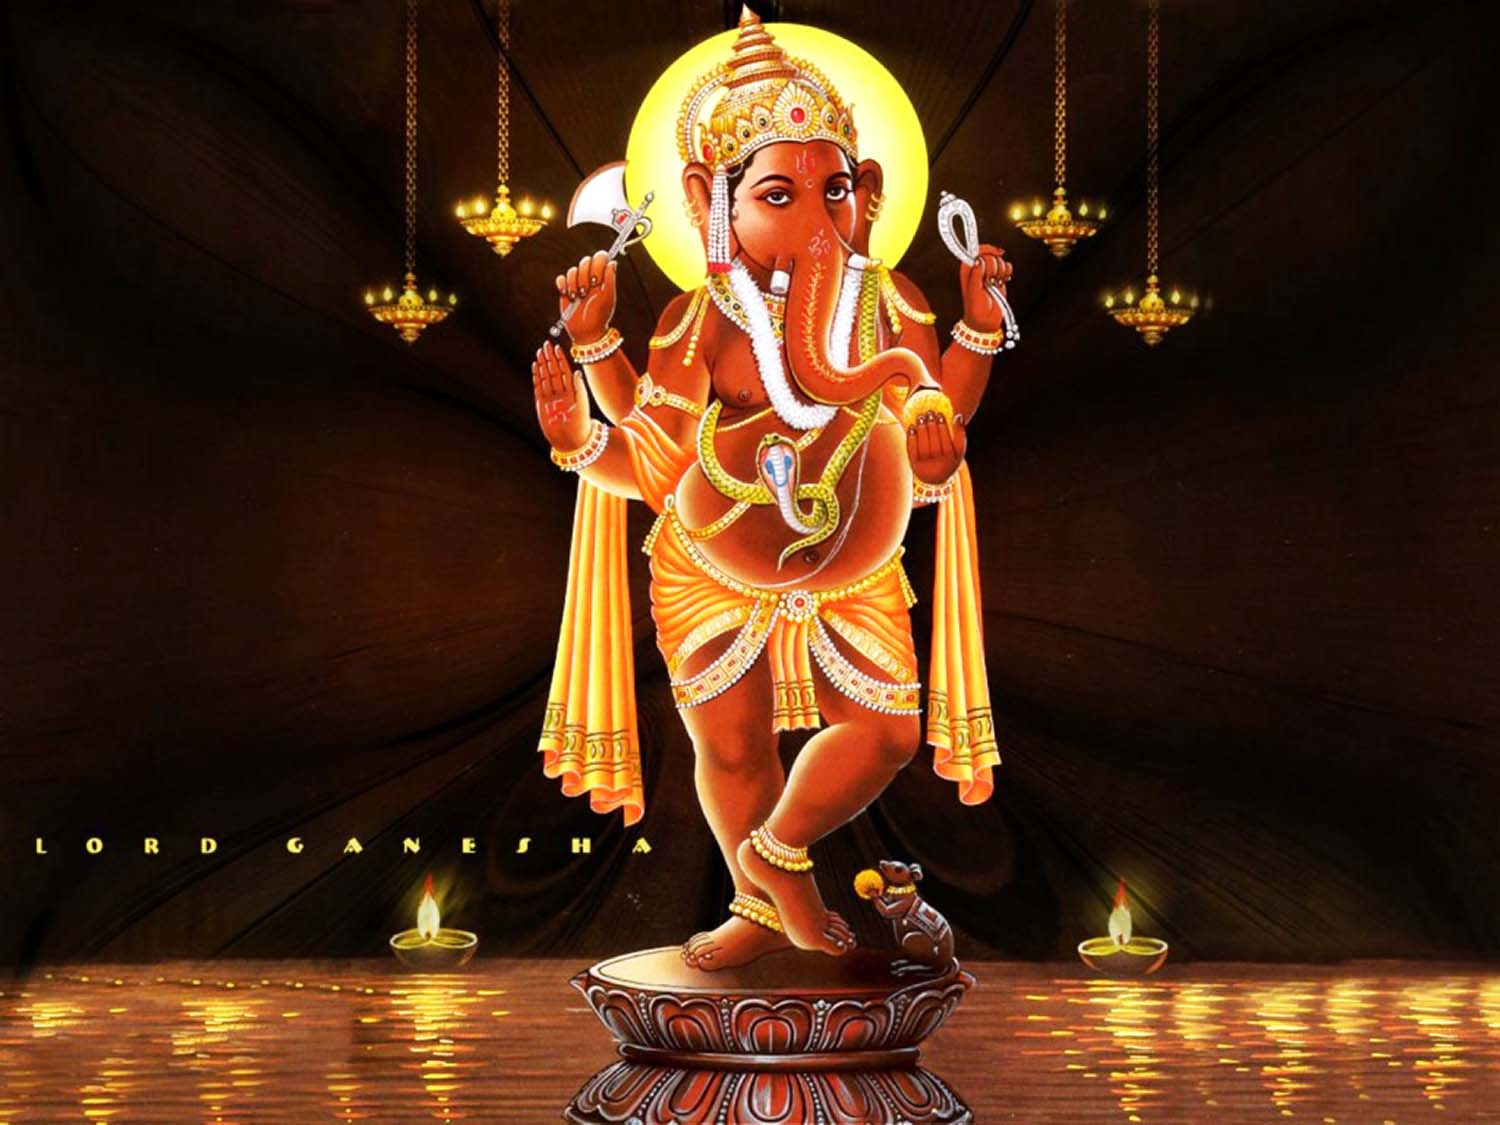 Standing Lord Ganesha pic!